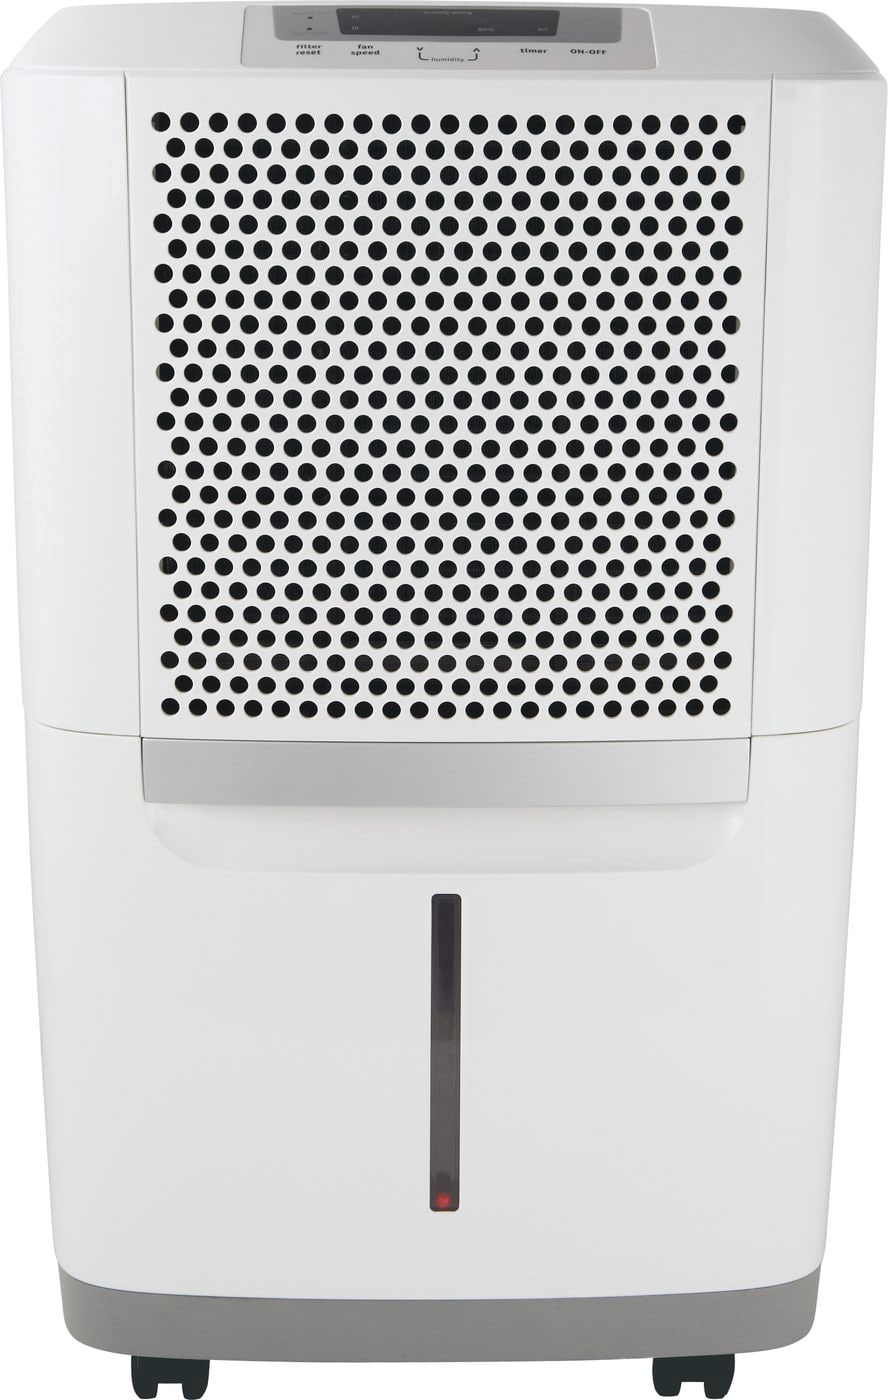 70 Pint Capacity Dehumidifier